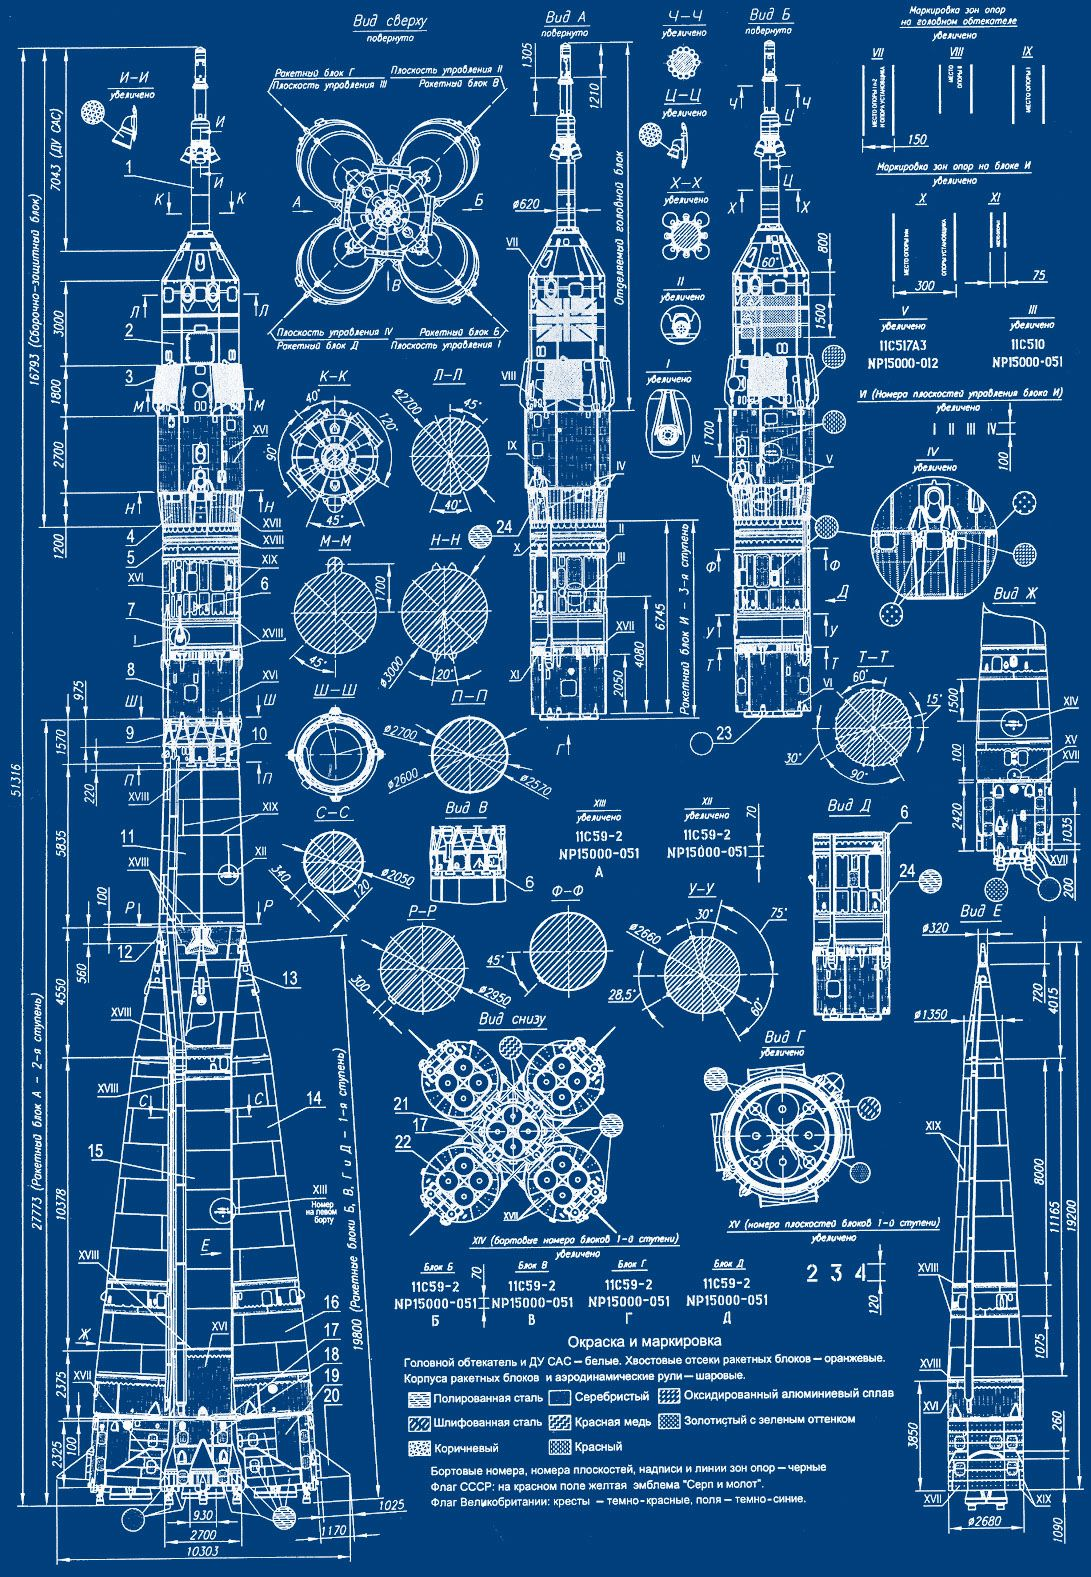 rocket blue print | You are here: Home → Around the Galaxy → Soyuz ...